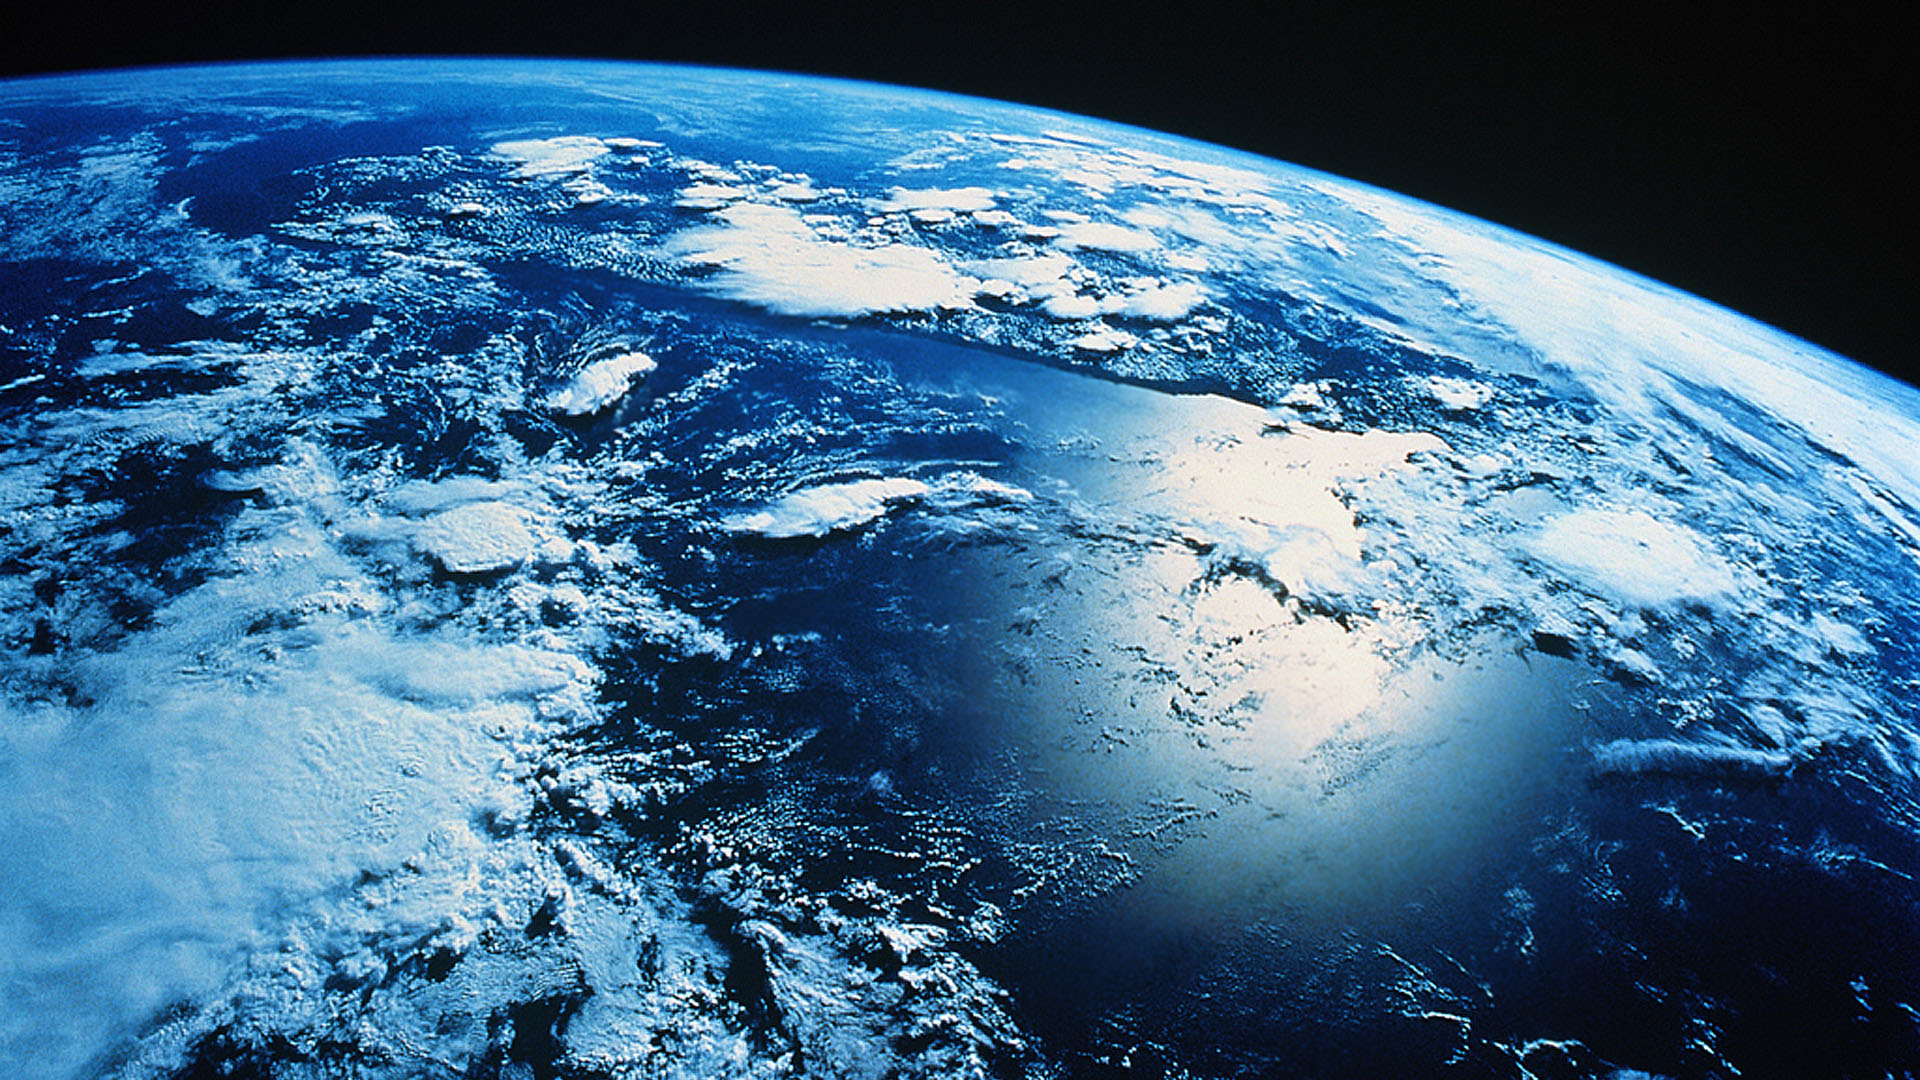 Planet Earth From Space Wallpaper